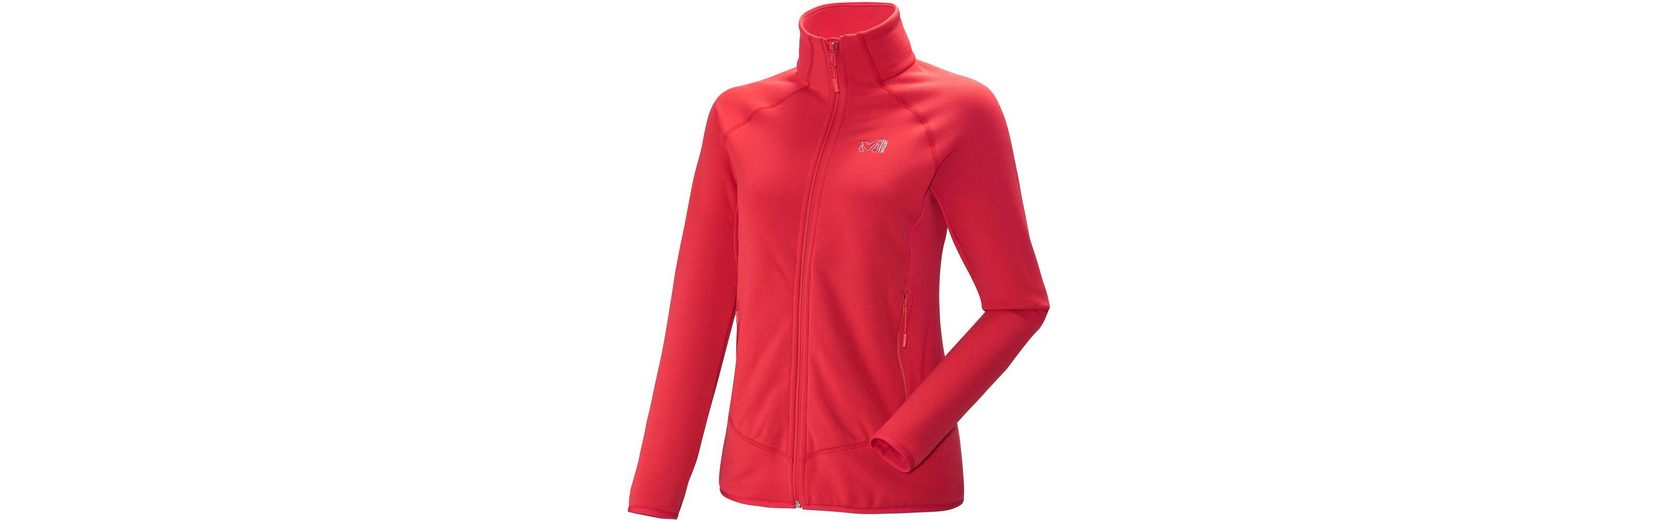 2018 Günstiger Preis Rabatt Billig Millet Outdoorjacke LD Charmoz Power Jacket Women Outlet Großer Rabatt Verkauf Perfekt Freies Verschiffen Erstaunlicher Preis v0dSYHJ